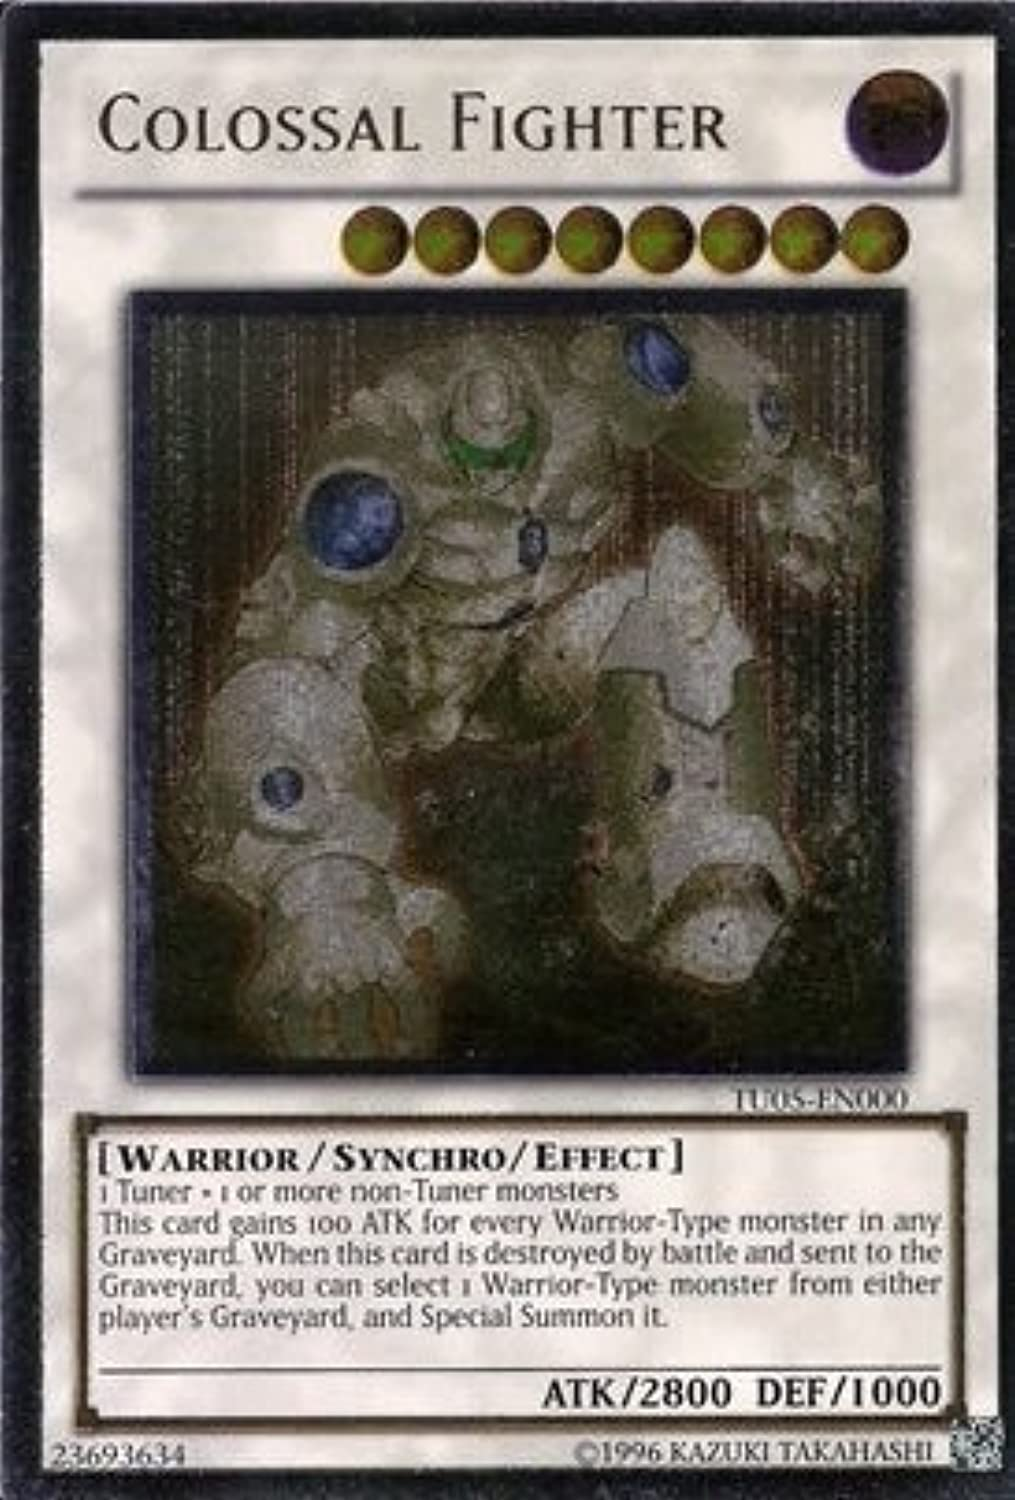 YuGiOh   Colossal Fighter (TU05EN000)  Turbo Pack 5  Promo Edition  Ultimate Rare by YuGiOh